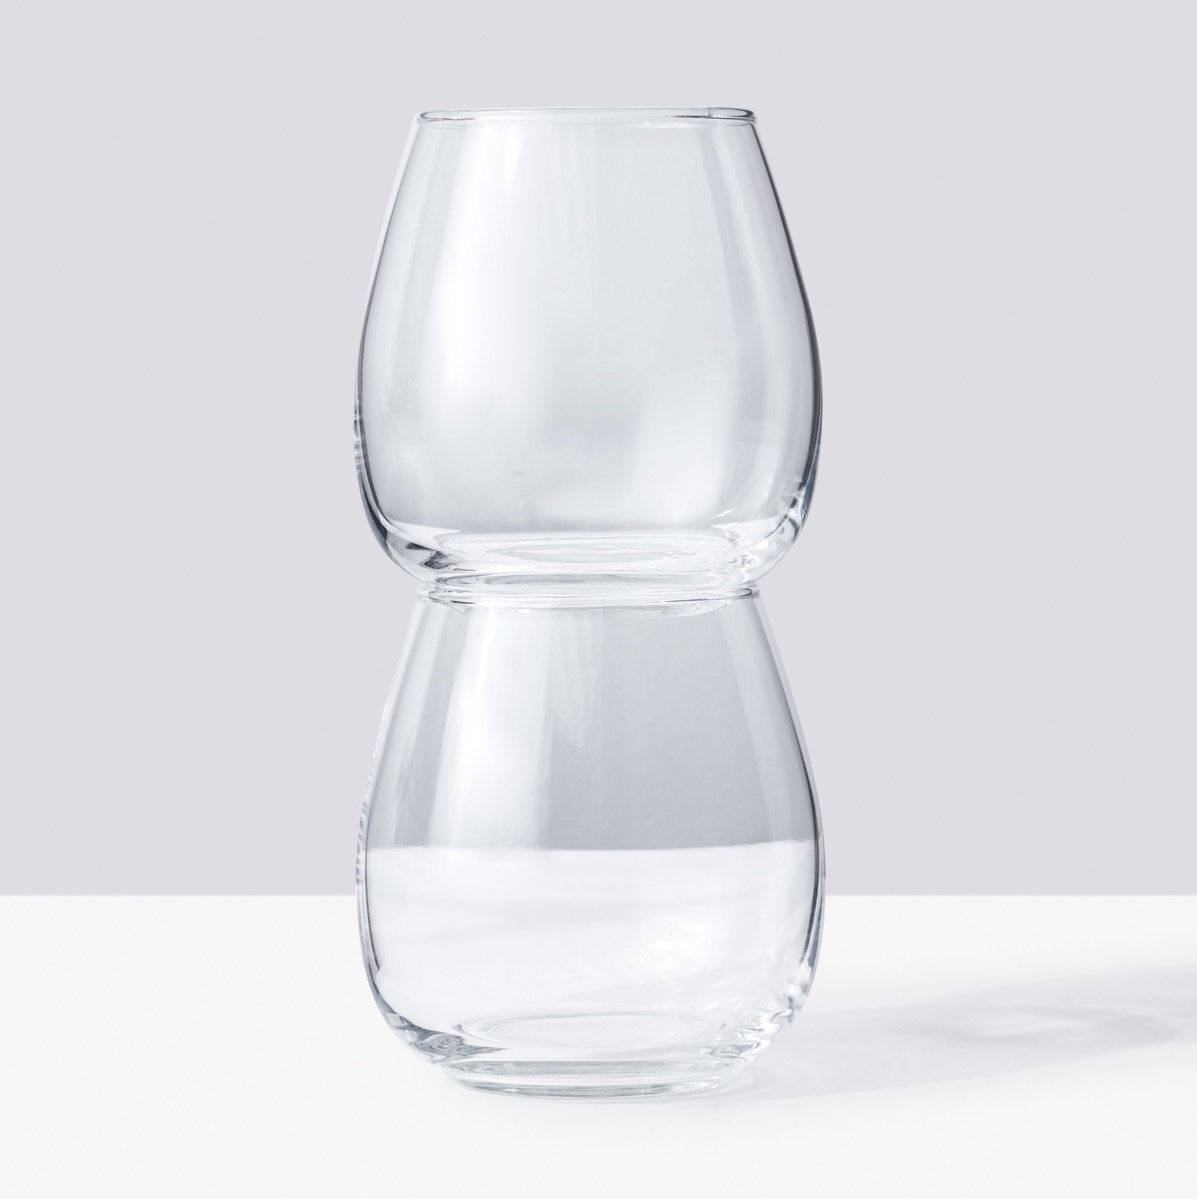 Two stemless wine glasses, stacked